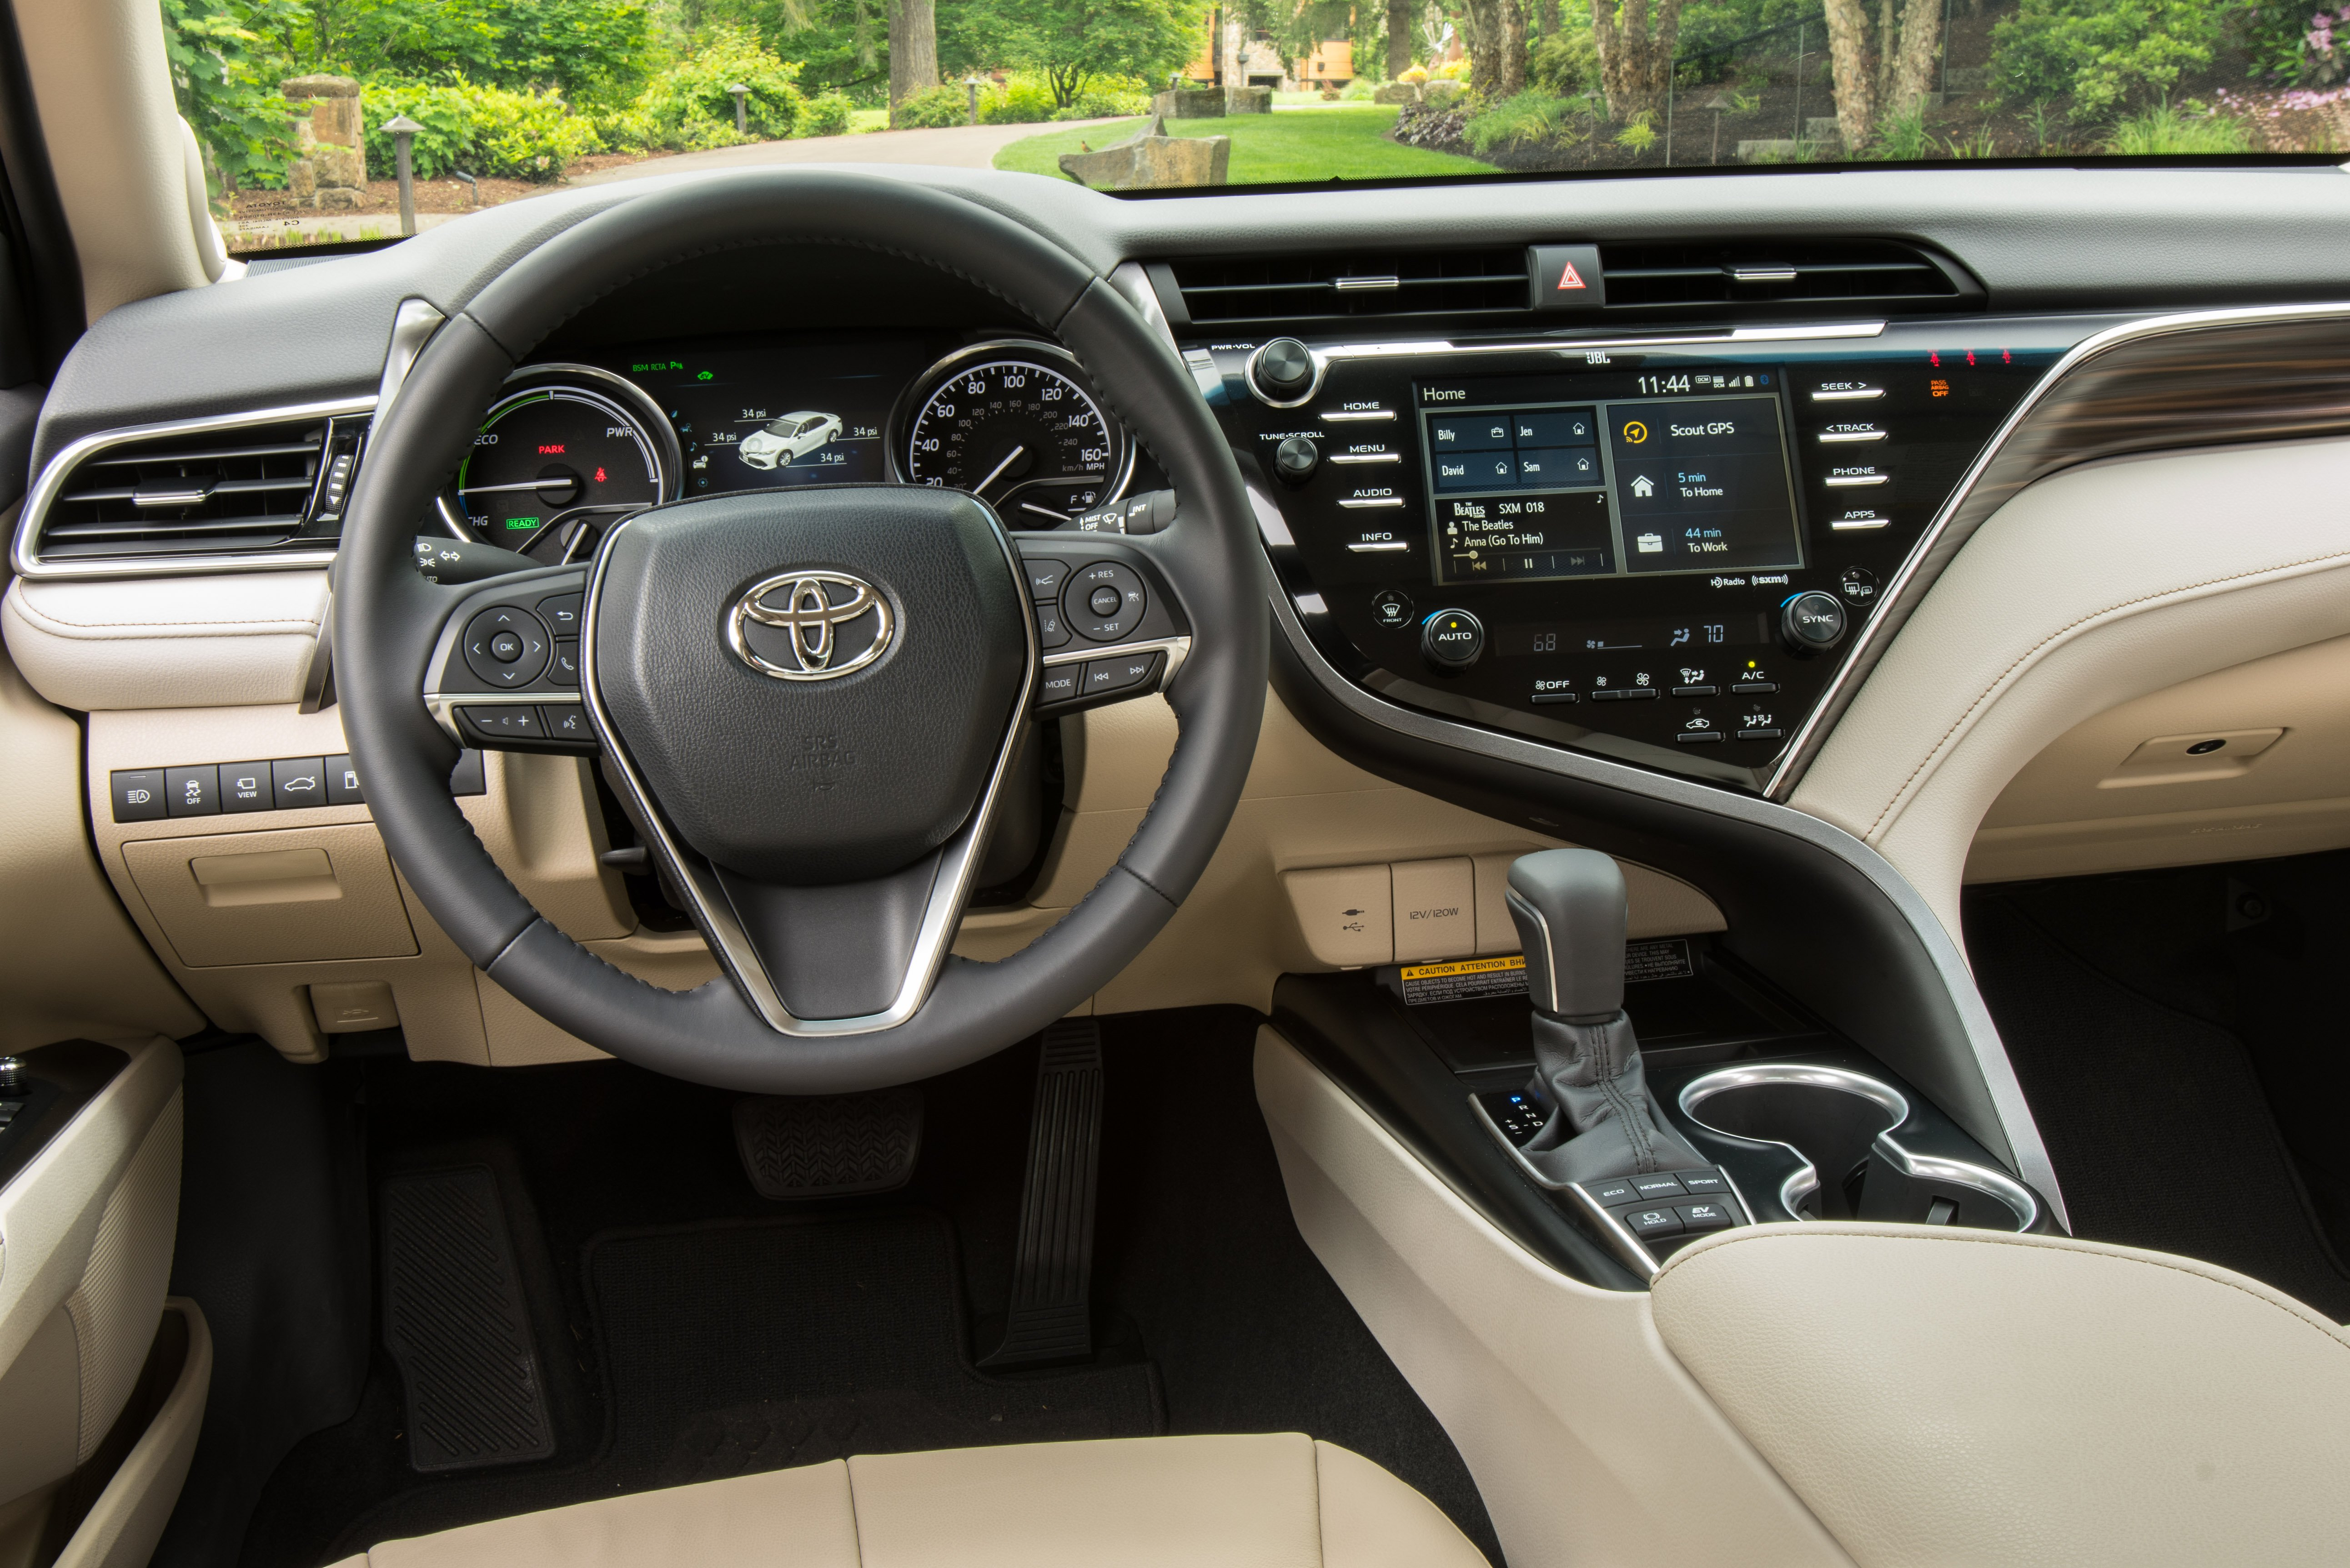 2018 Toyota Camry: What's changed | CarAdvice